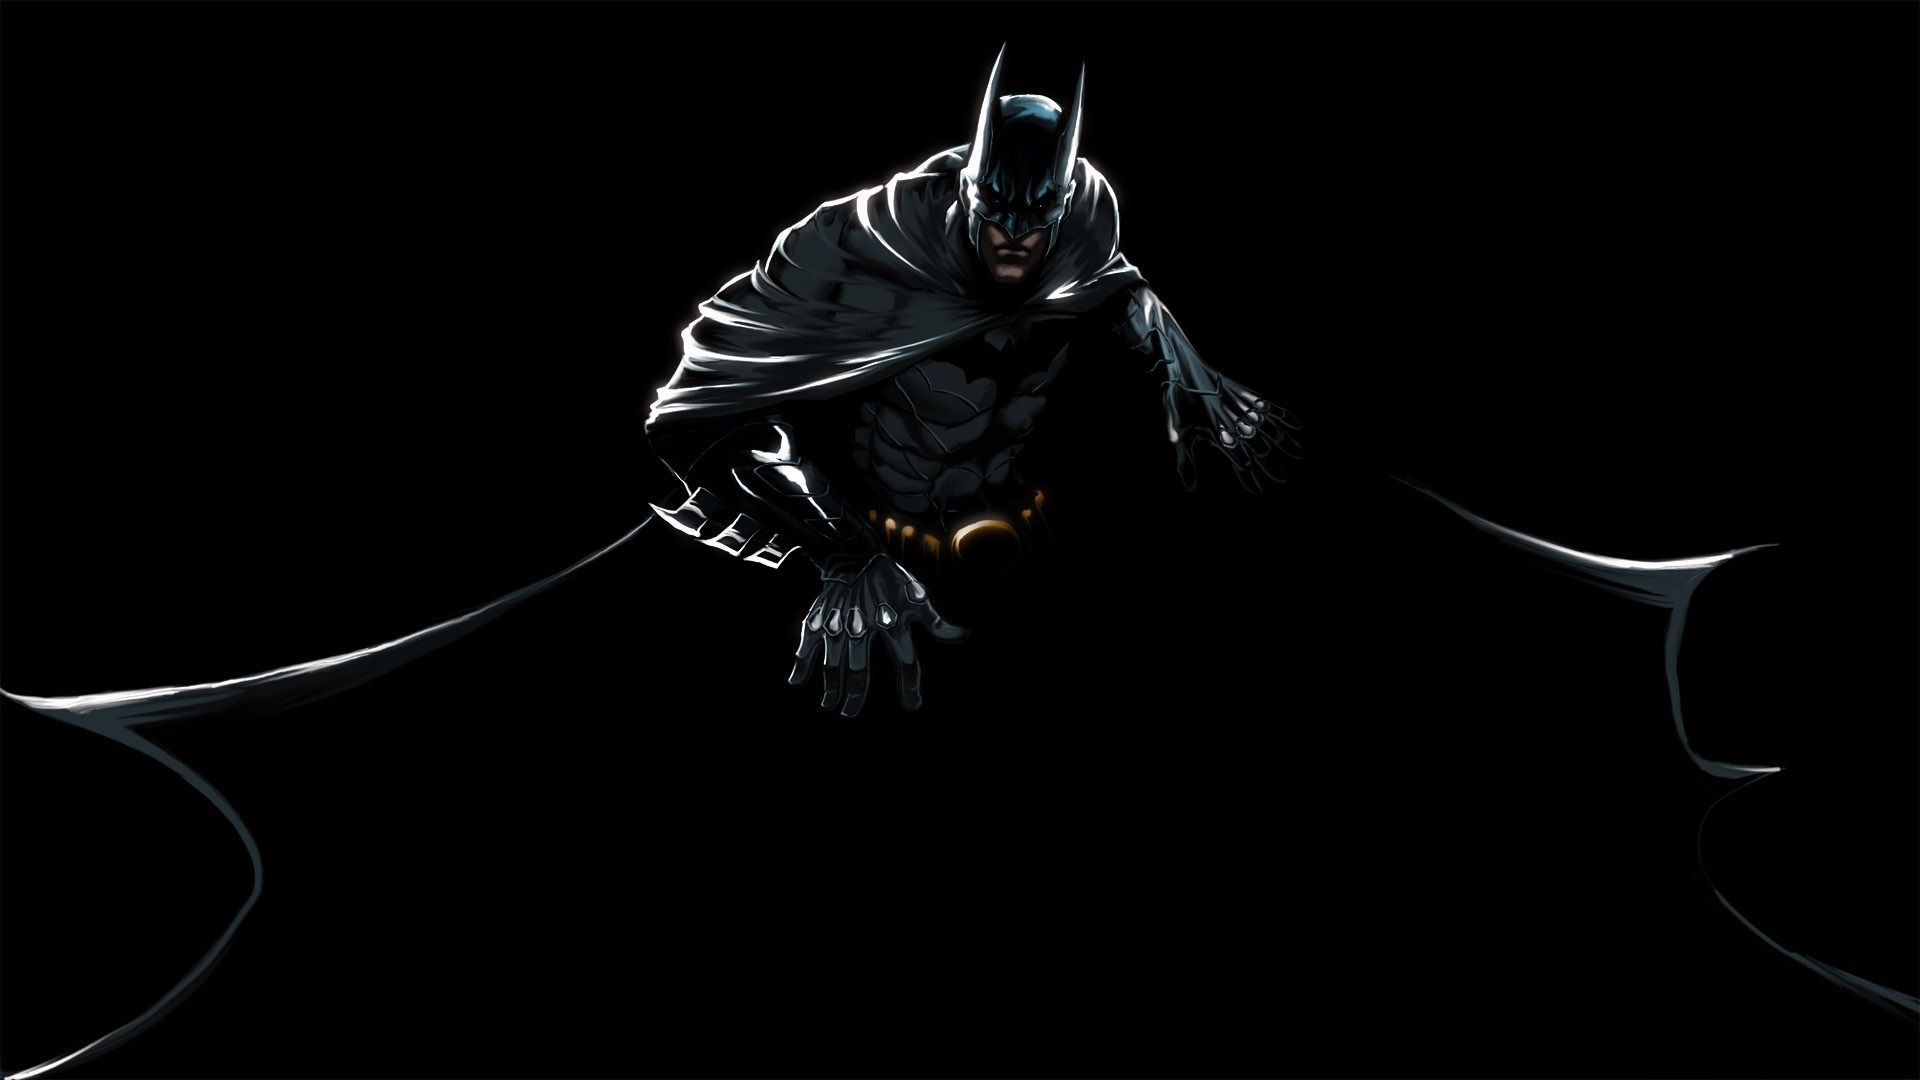 Batman Desktop Backgrounds - Wallpaper Cave